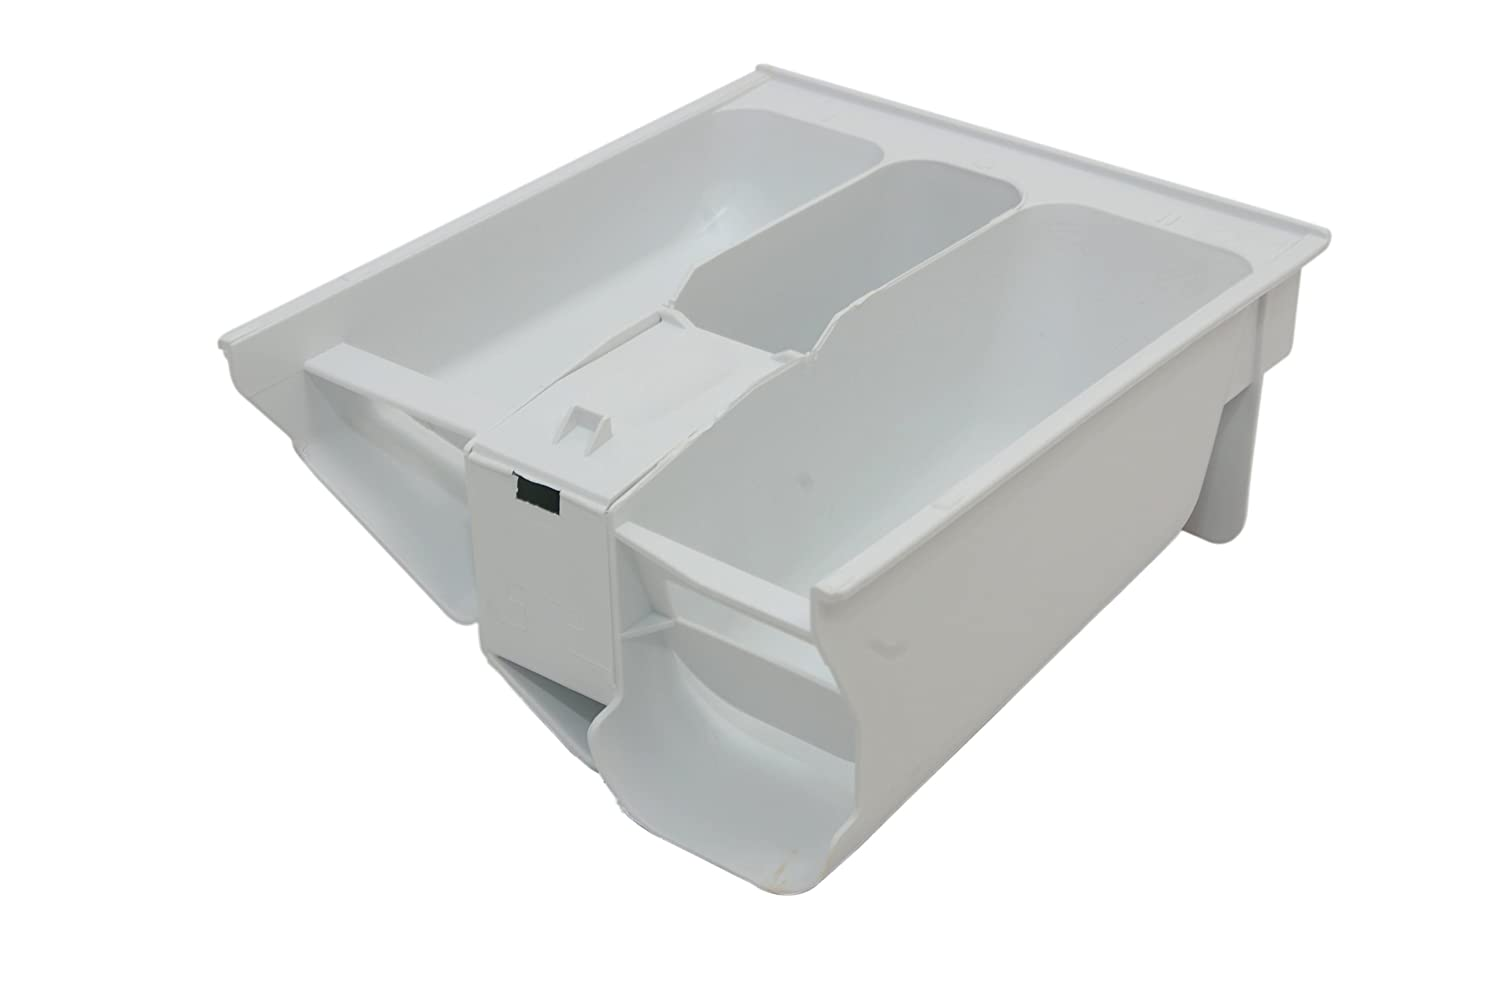 BOSCH Washing Machine SOAP DISPENSER DRAWER 354123 BOSCH 354123